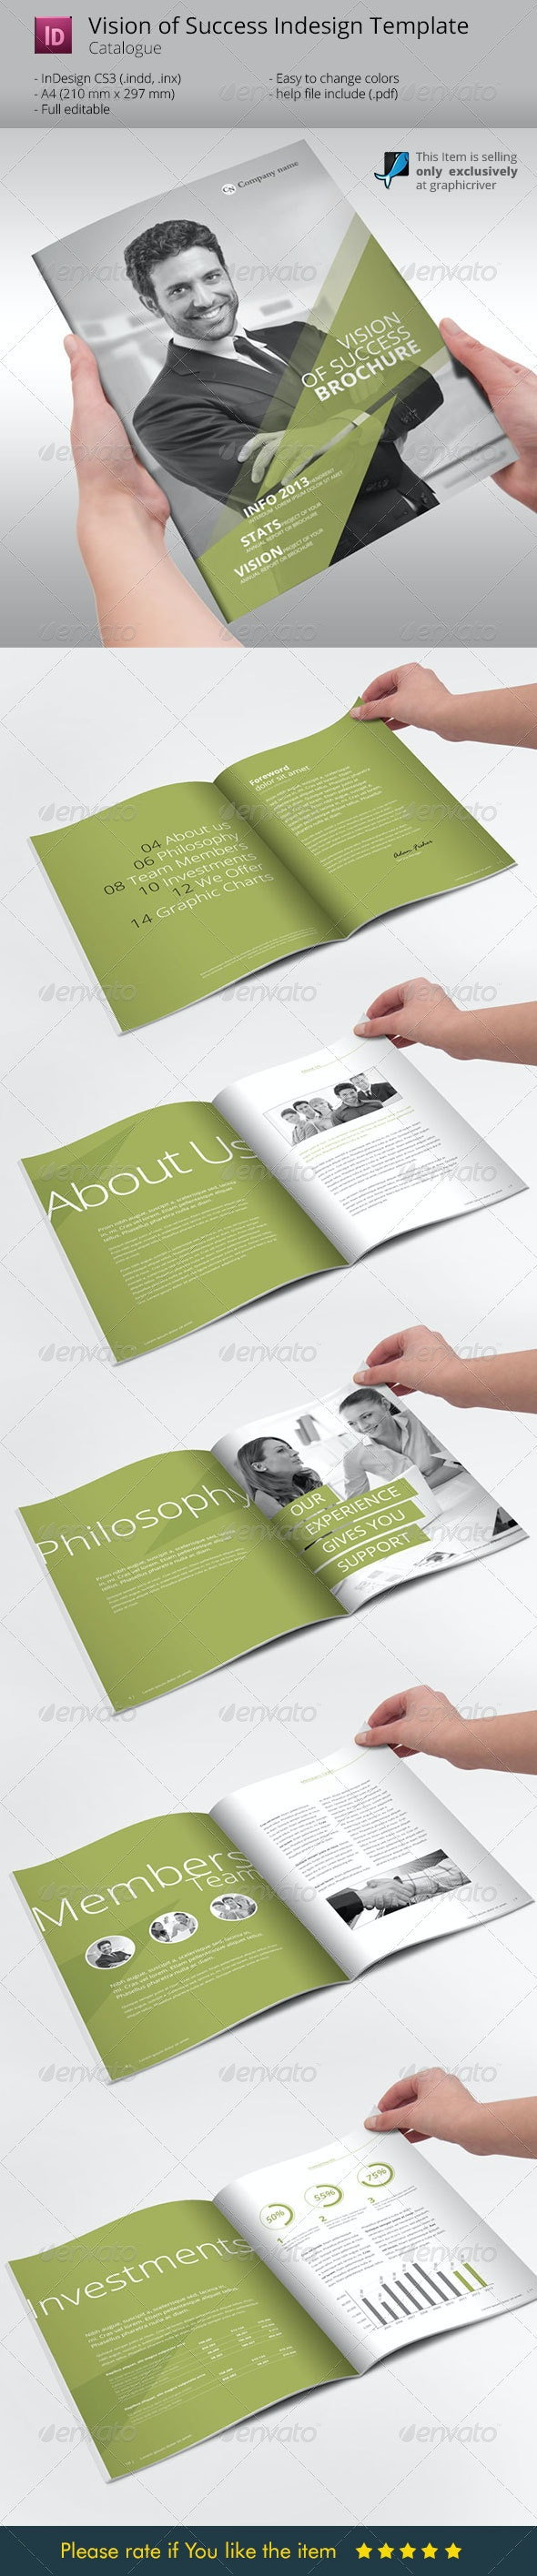 Vision of Success Indesign Template Brochure - Corporate Brochures